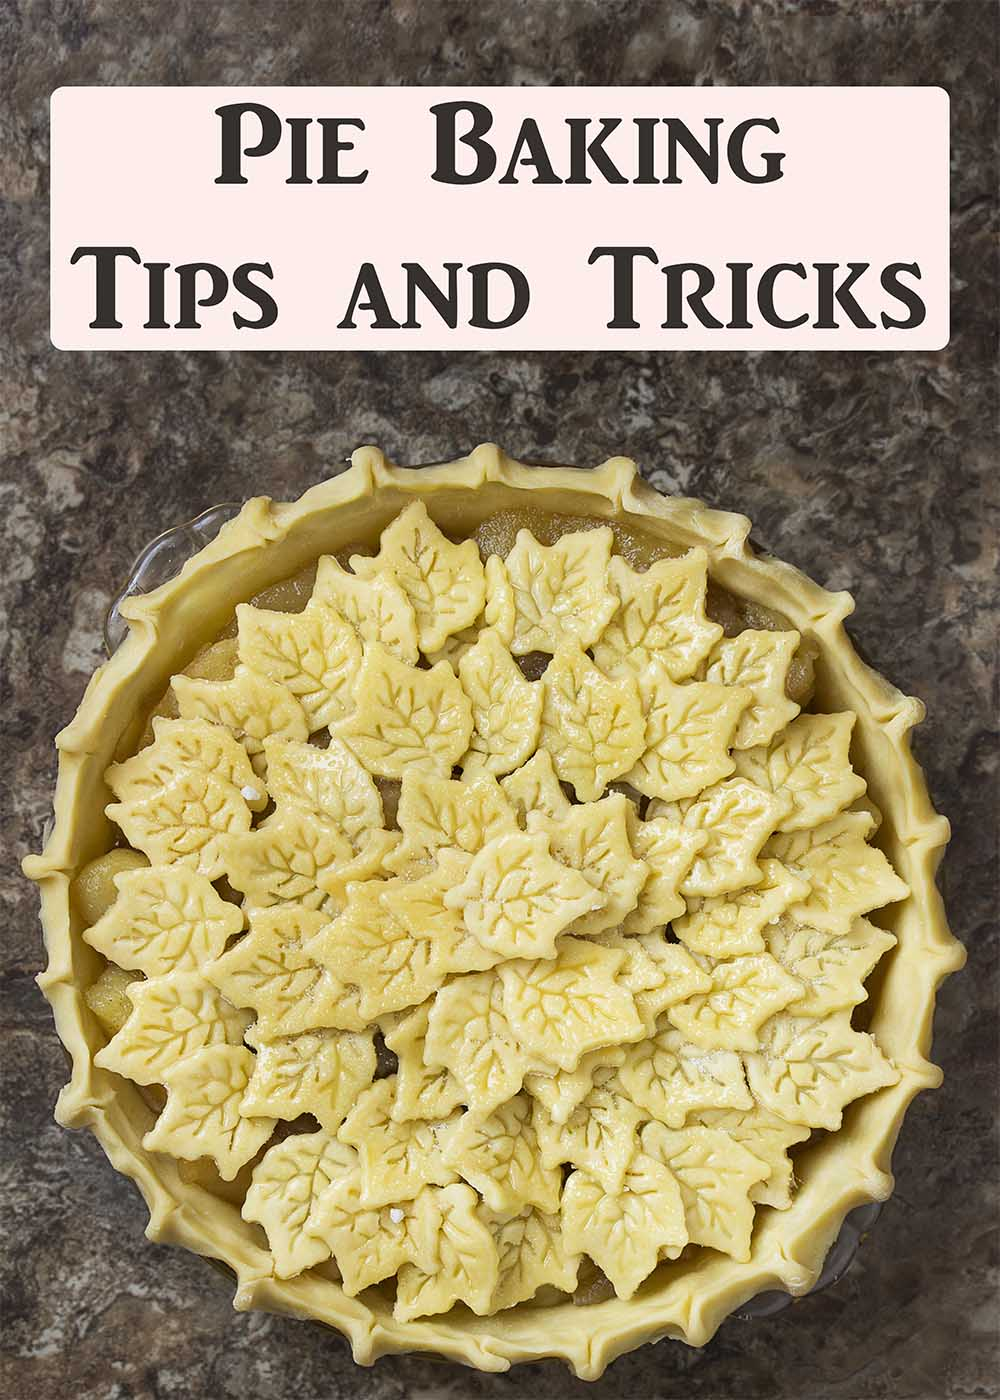 Pie Baking Tips Title Image